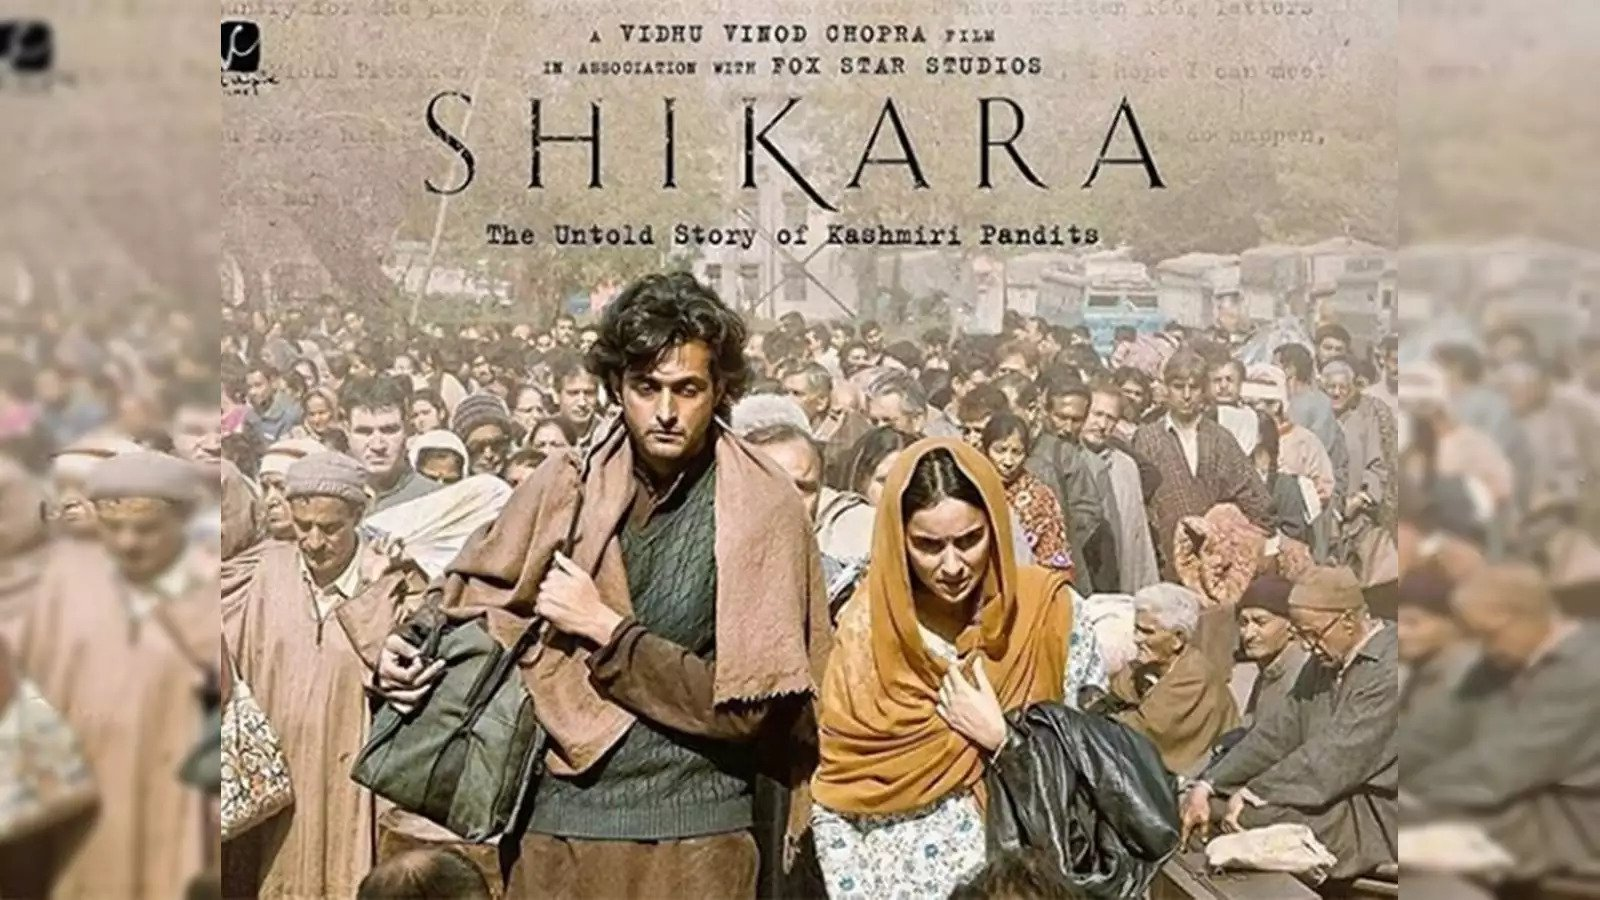 Chattar Pattar Lyrics from Shikara is Latest Hindi song sung by Mika Singh featuring Aadil Khan, Sadia and music of new song is given by Rohit Kulkarni while lyrics penned by Raqueeb Alam and video is directed by Vidhu Vinod Chopra.